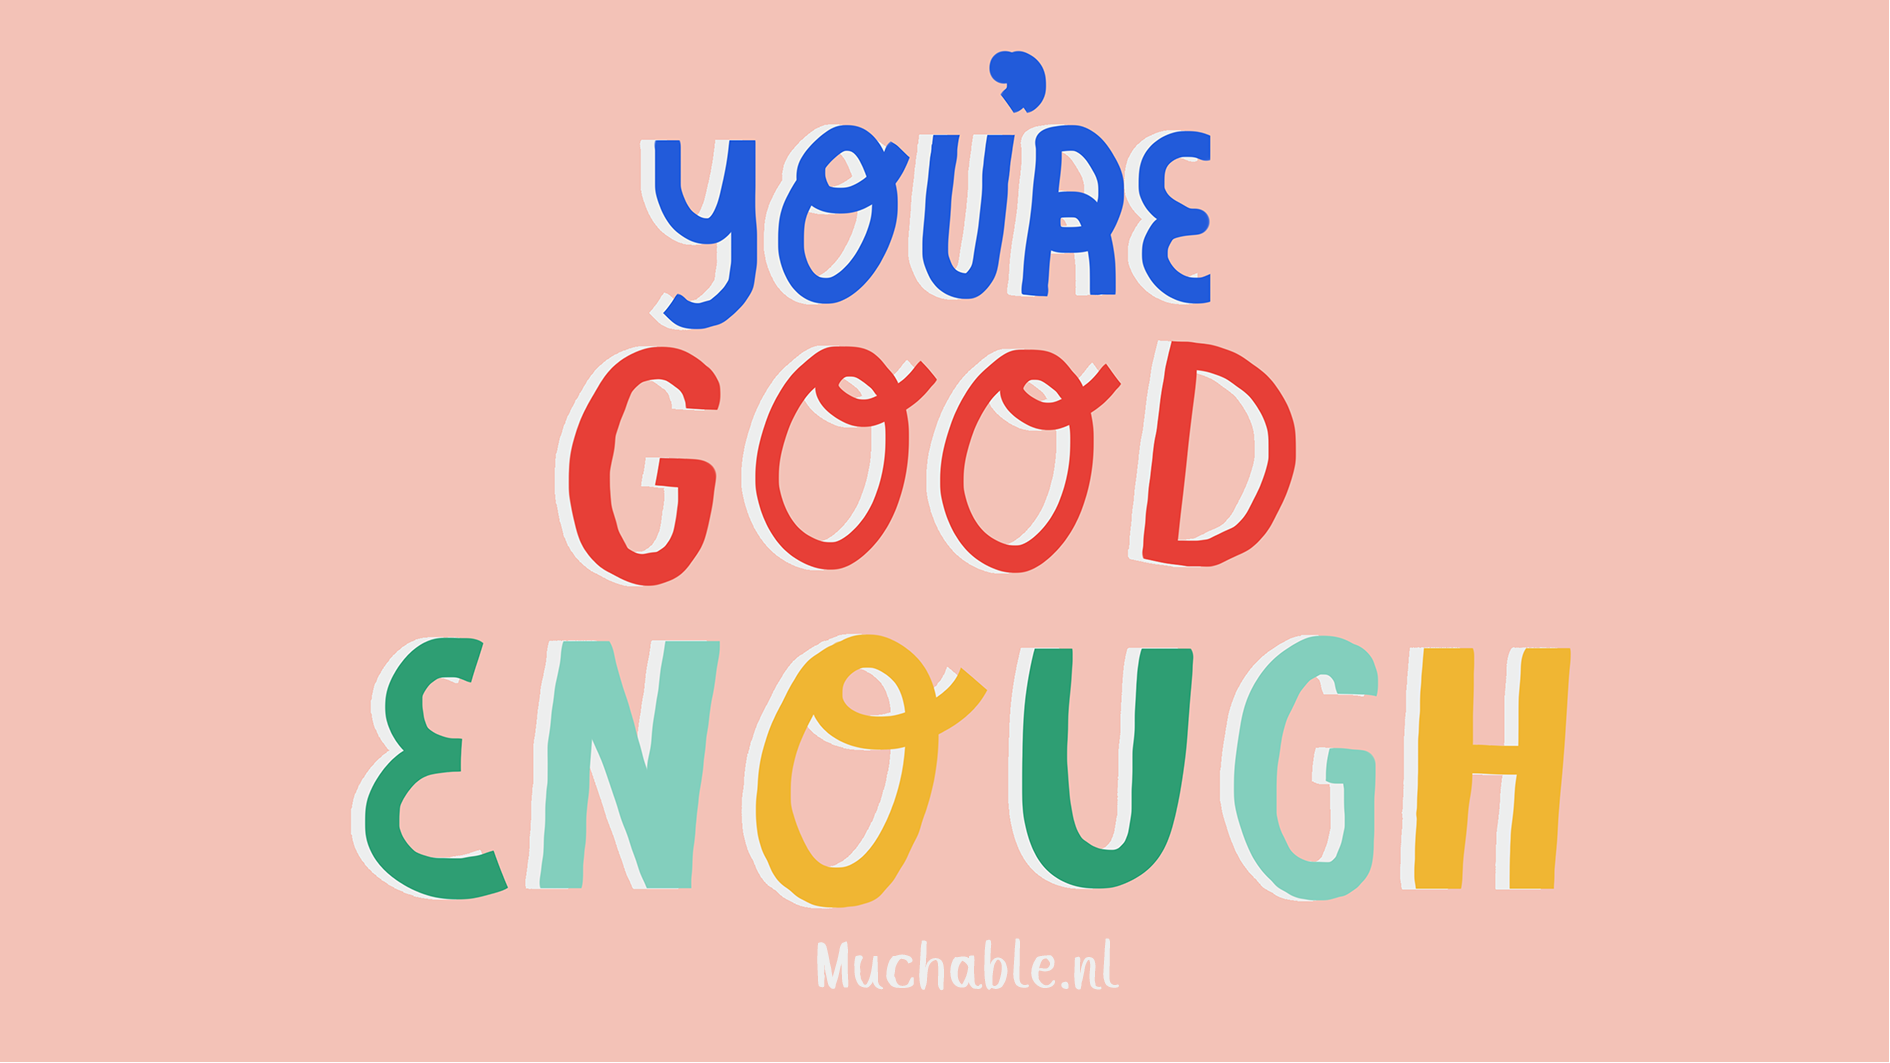 You are good enough with credits (1).png